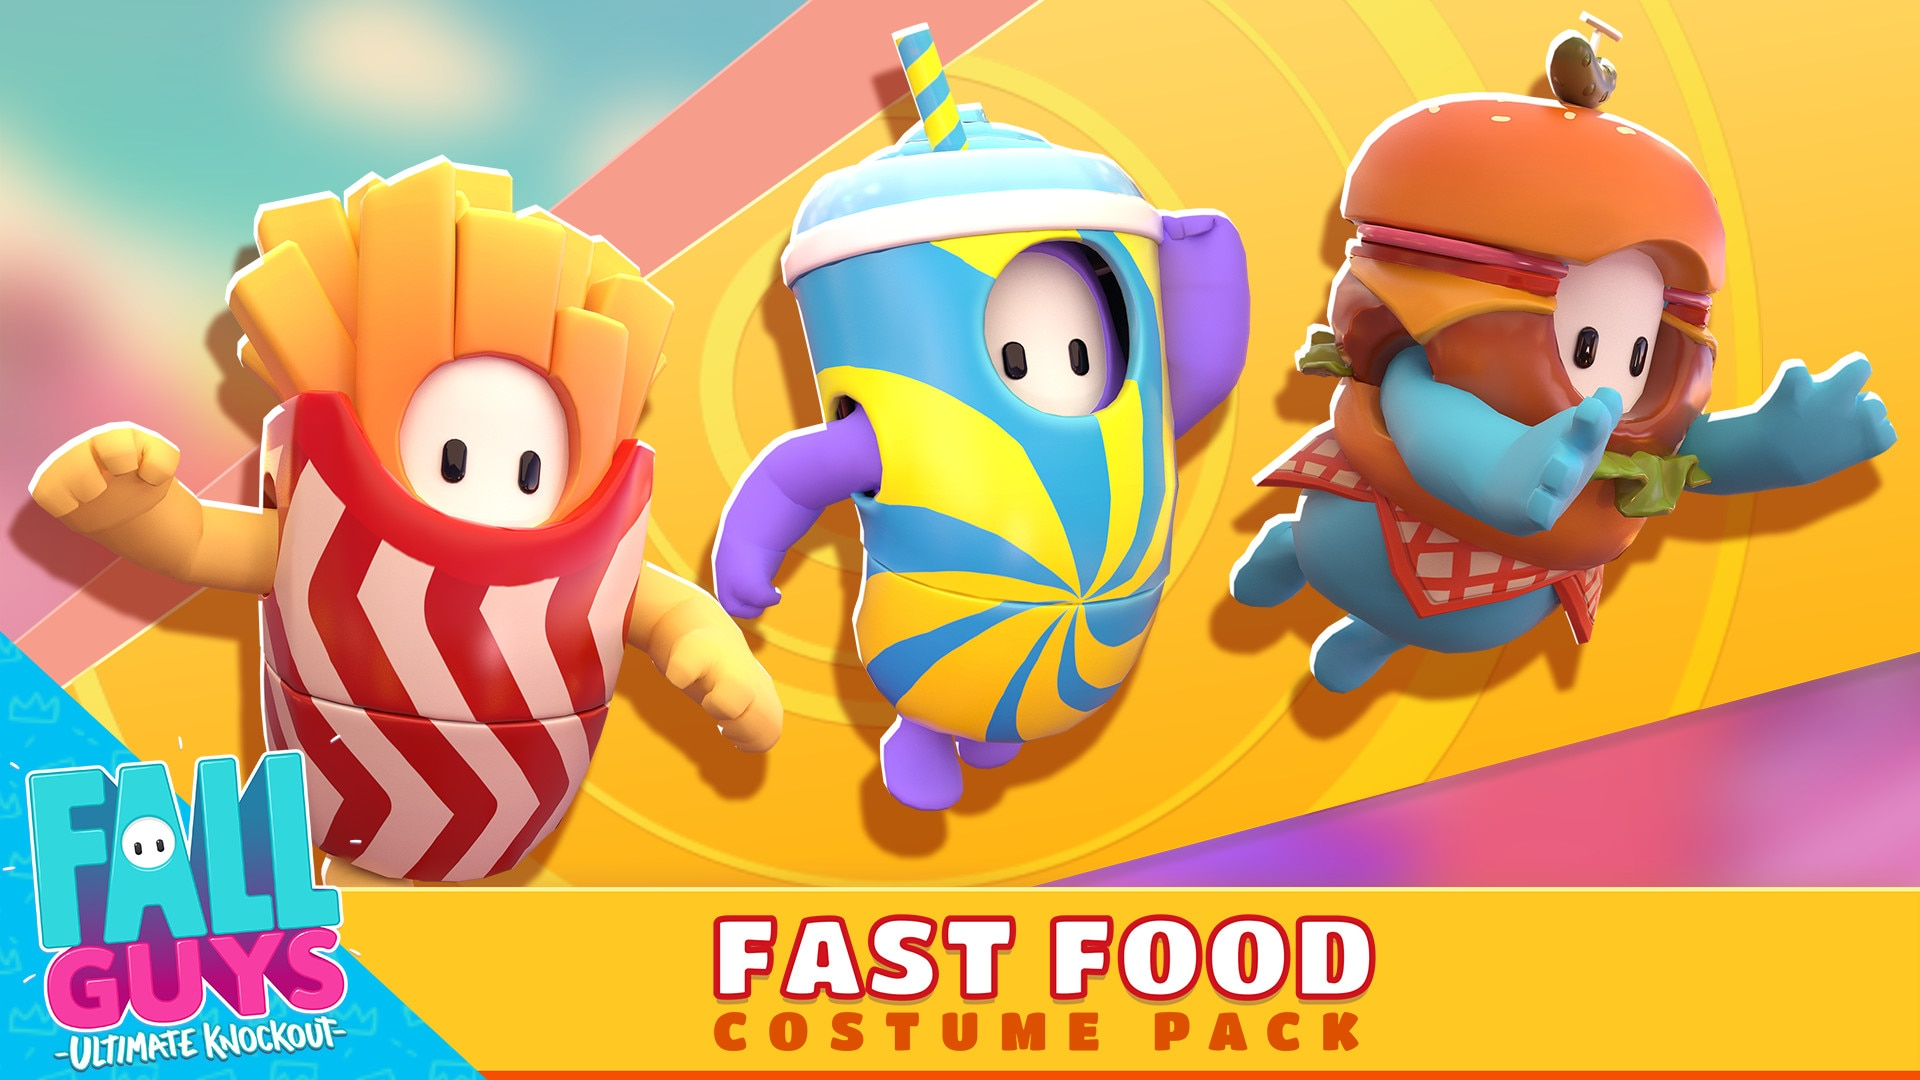 Fall Guys - Fast Food Costume Pack (PC) - Steam Gift - GLOBAL - 1